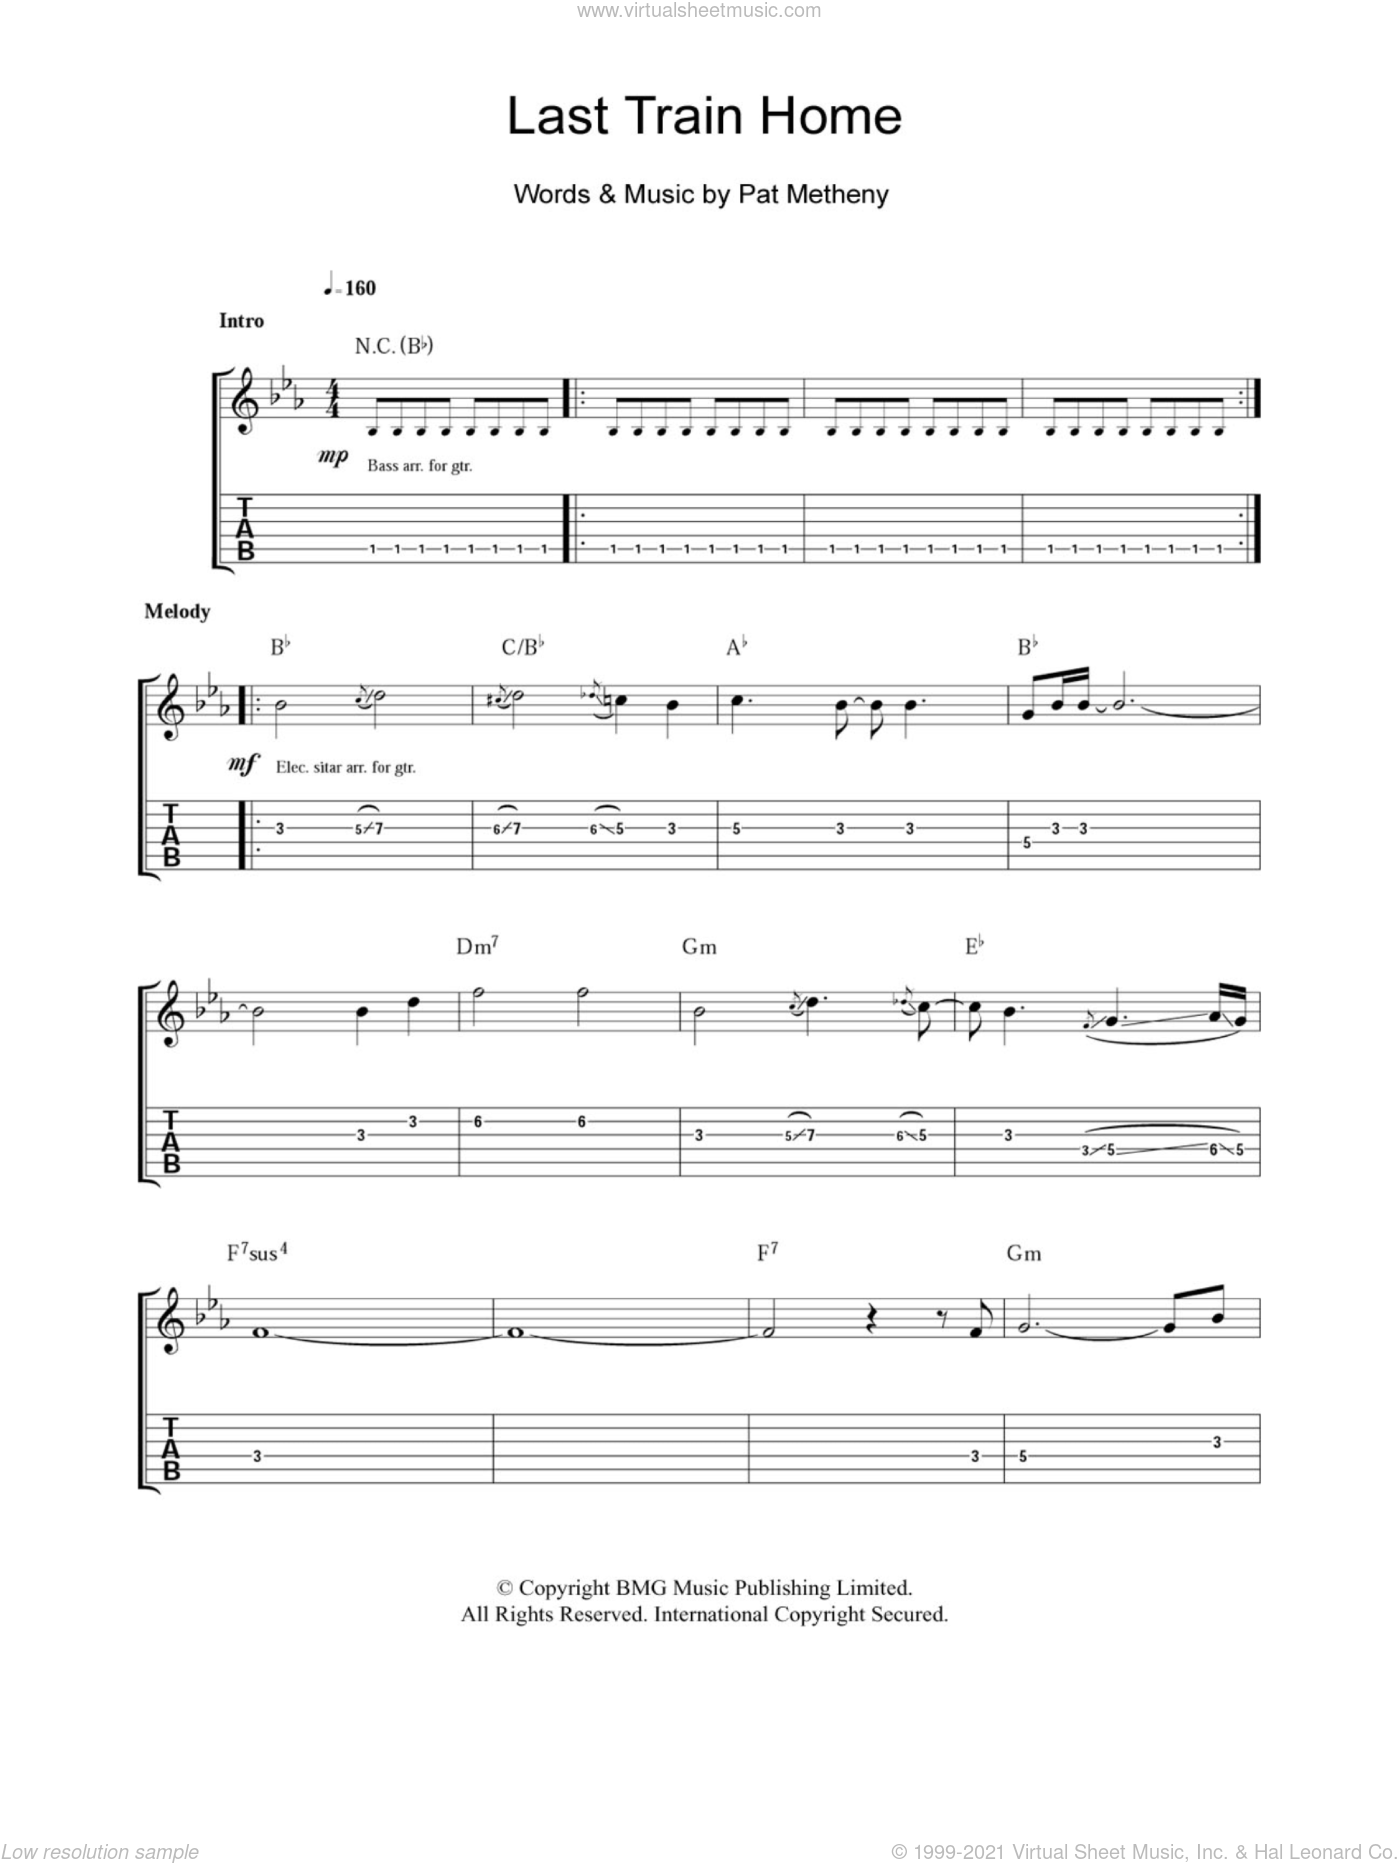 Last Train Home sheet music for guitar (tablature) by Pat Metheny